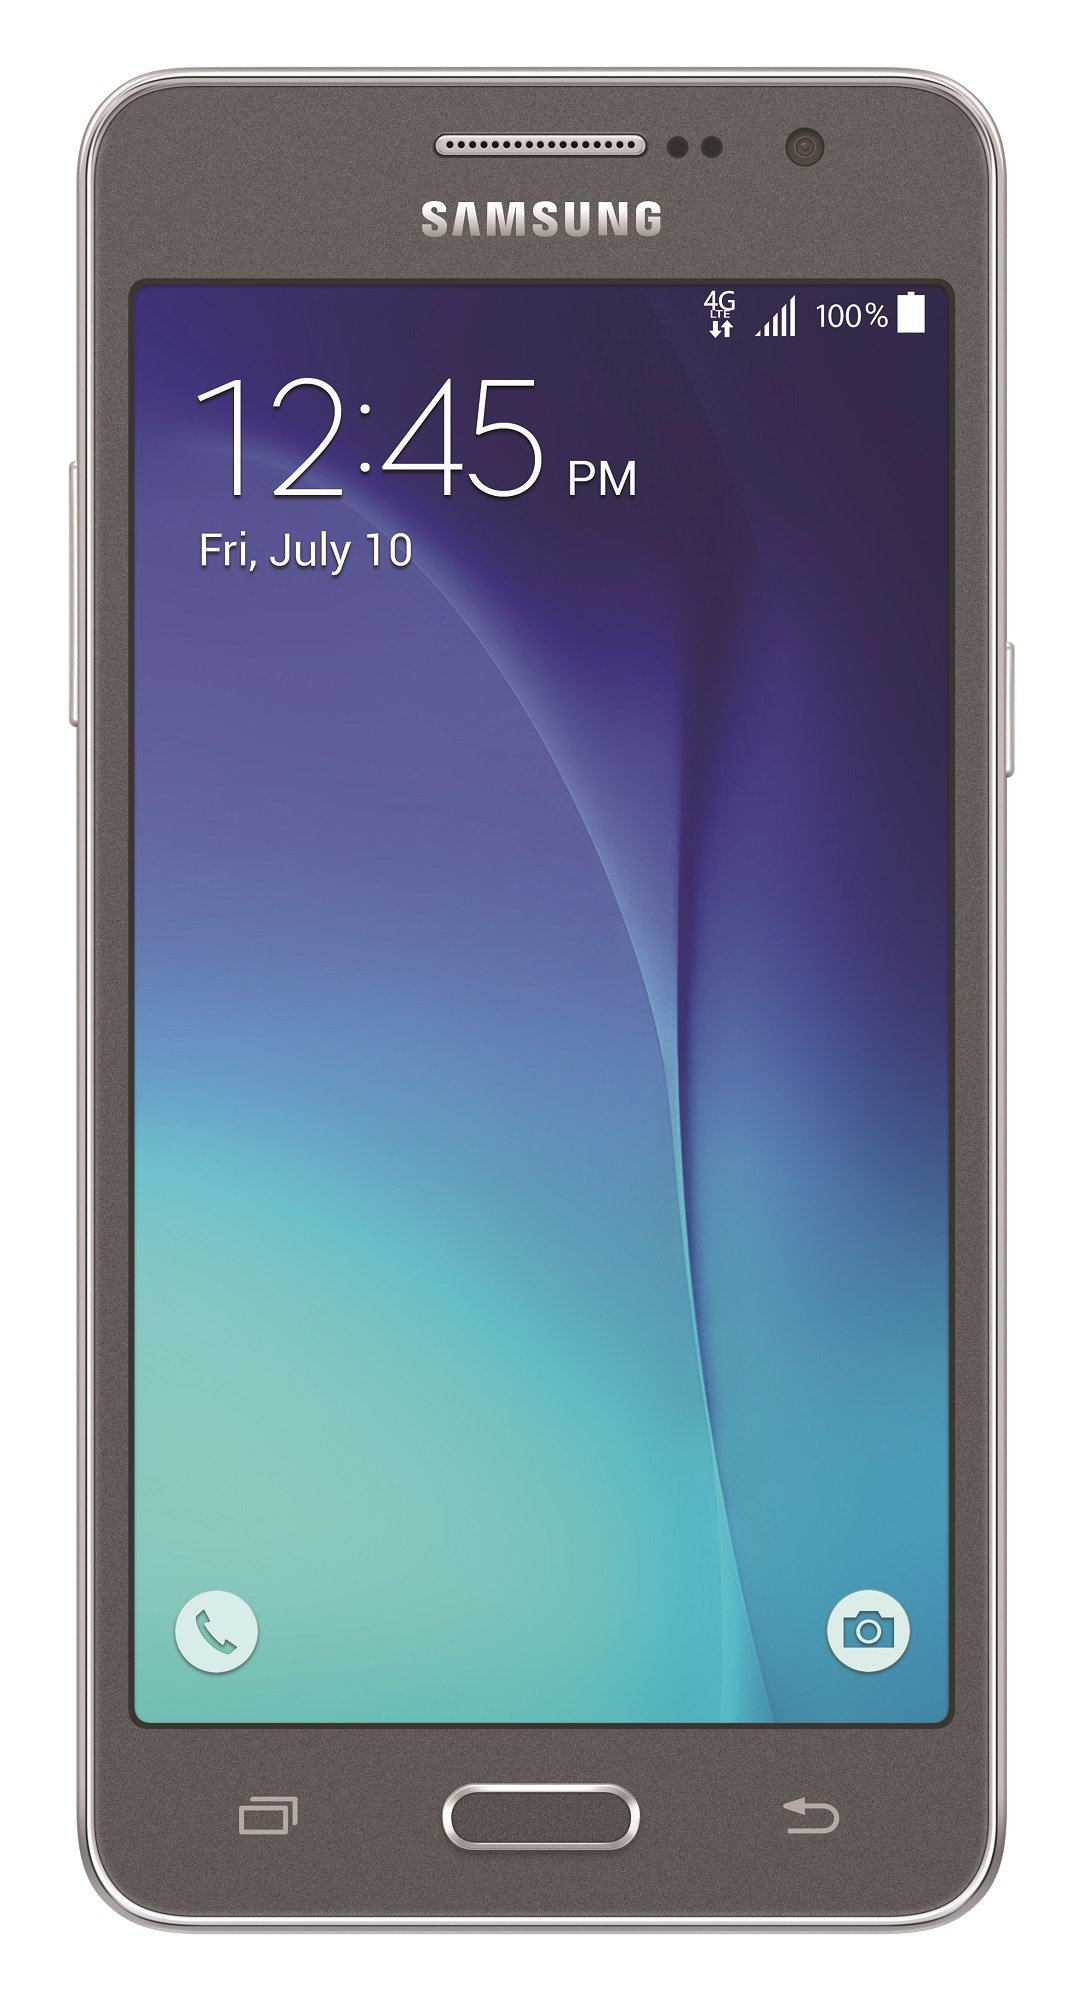 Samsung Grand Prime - No Contract - (US Cellular) by Samsung